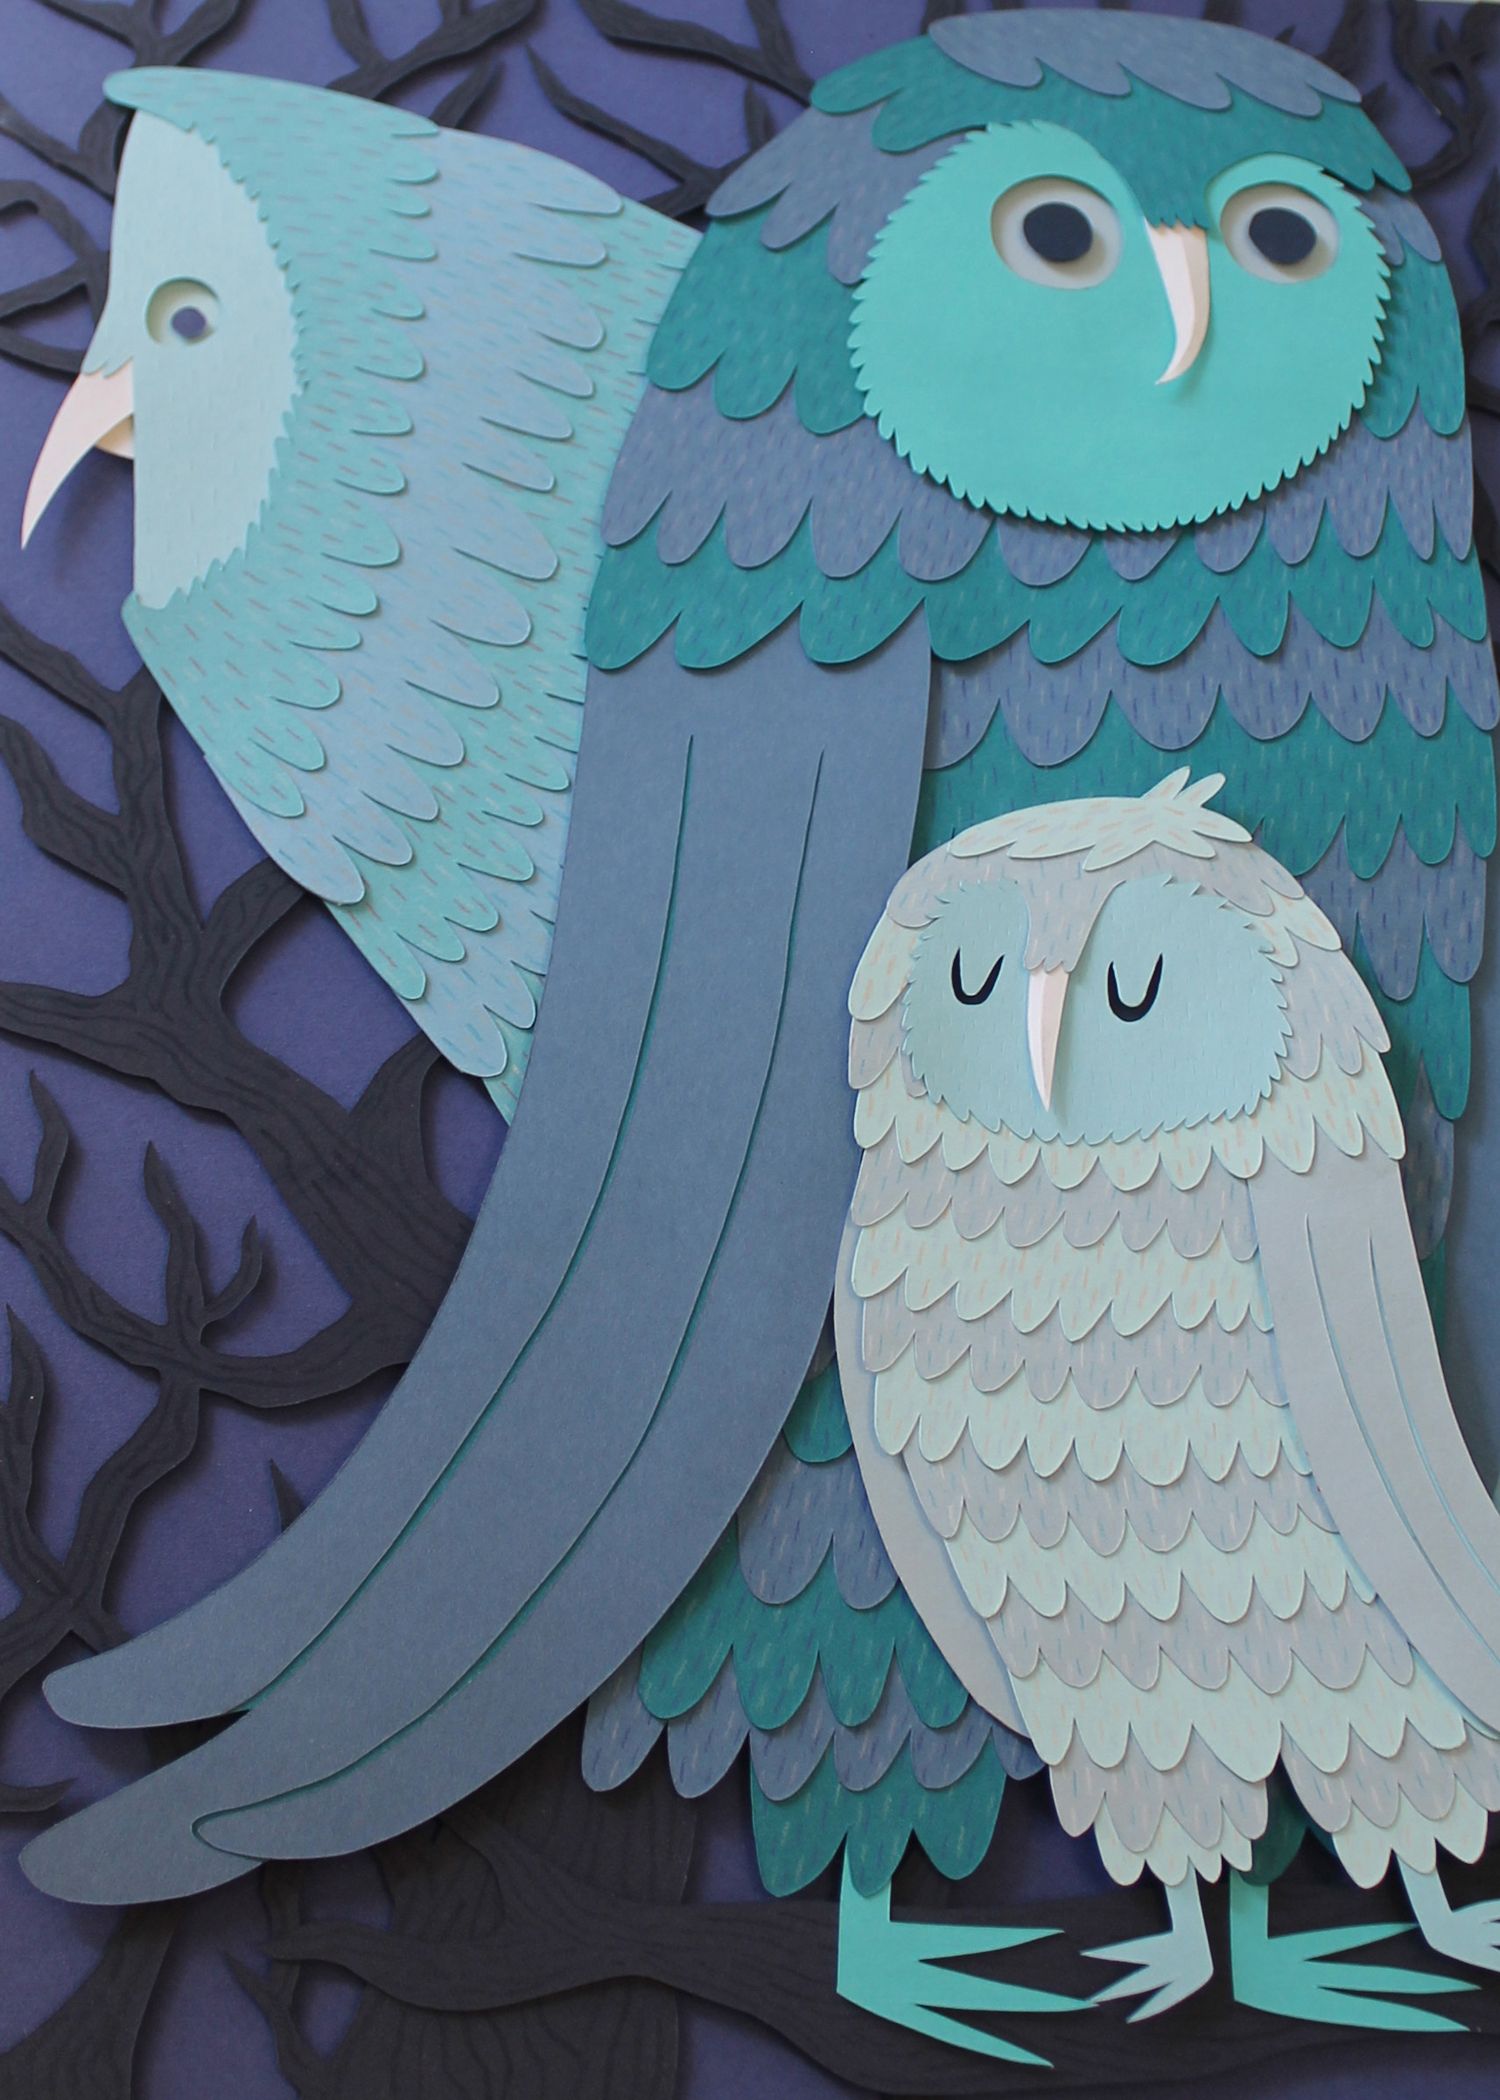 Owl Family  by Jared Andrew Schorr from  Paperworks  2013